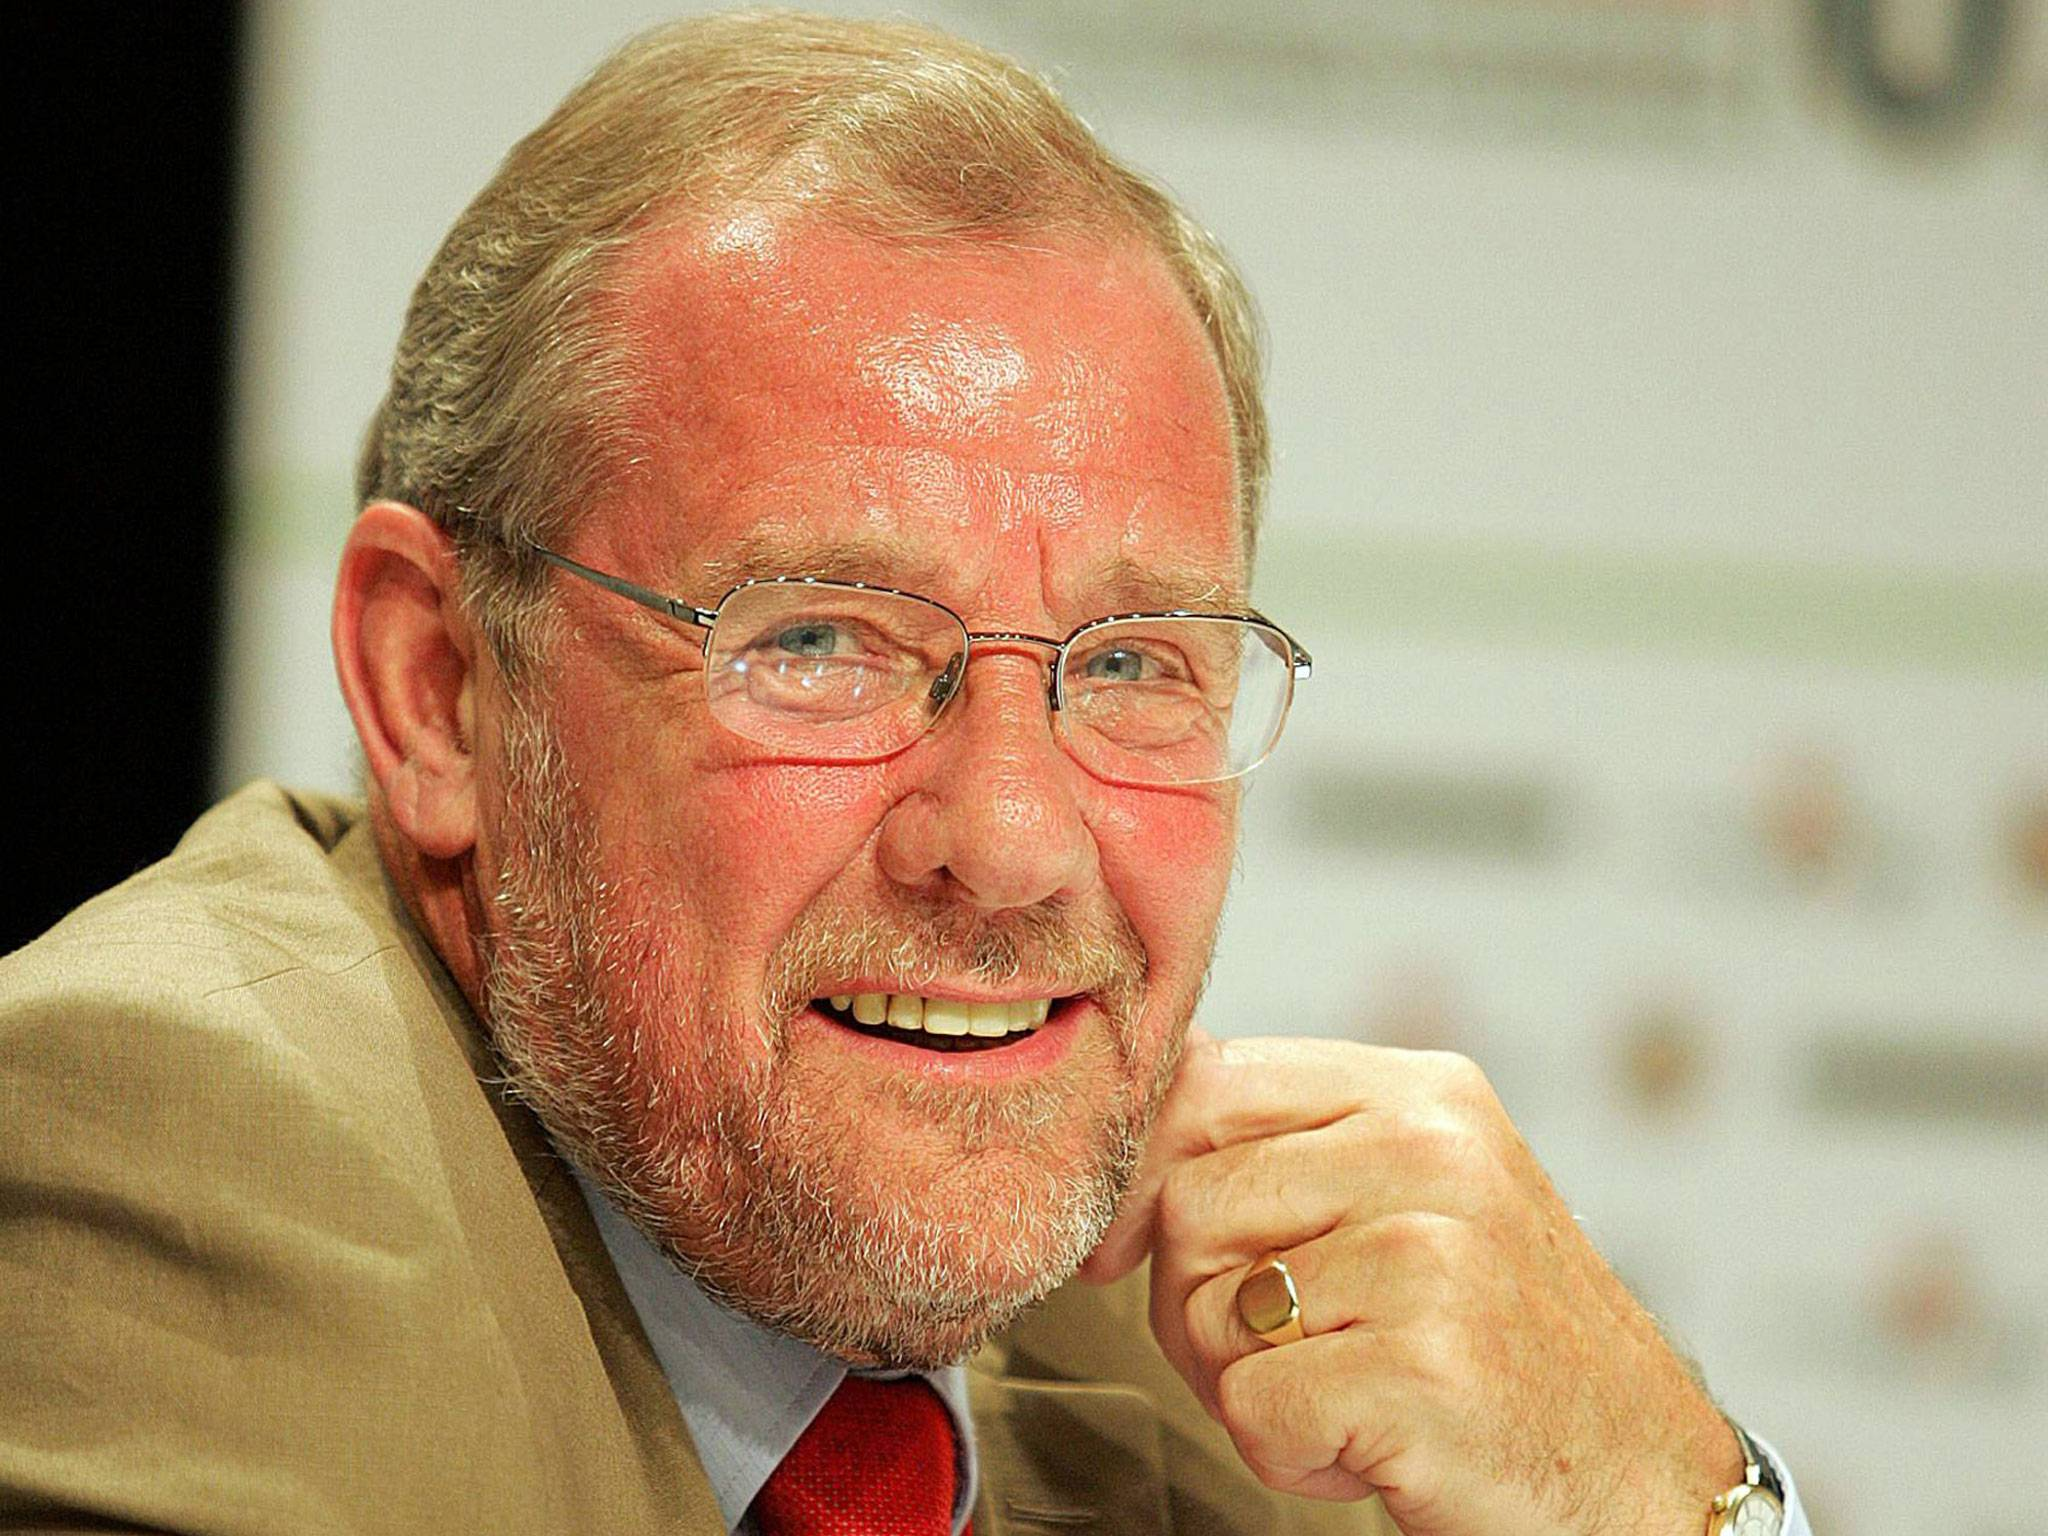 Richard Caborn has confirmed he will step down as chairman of the ABAE